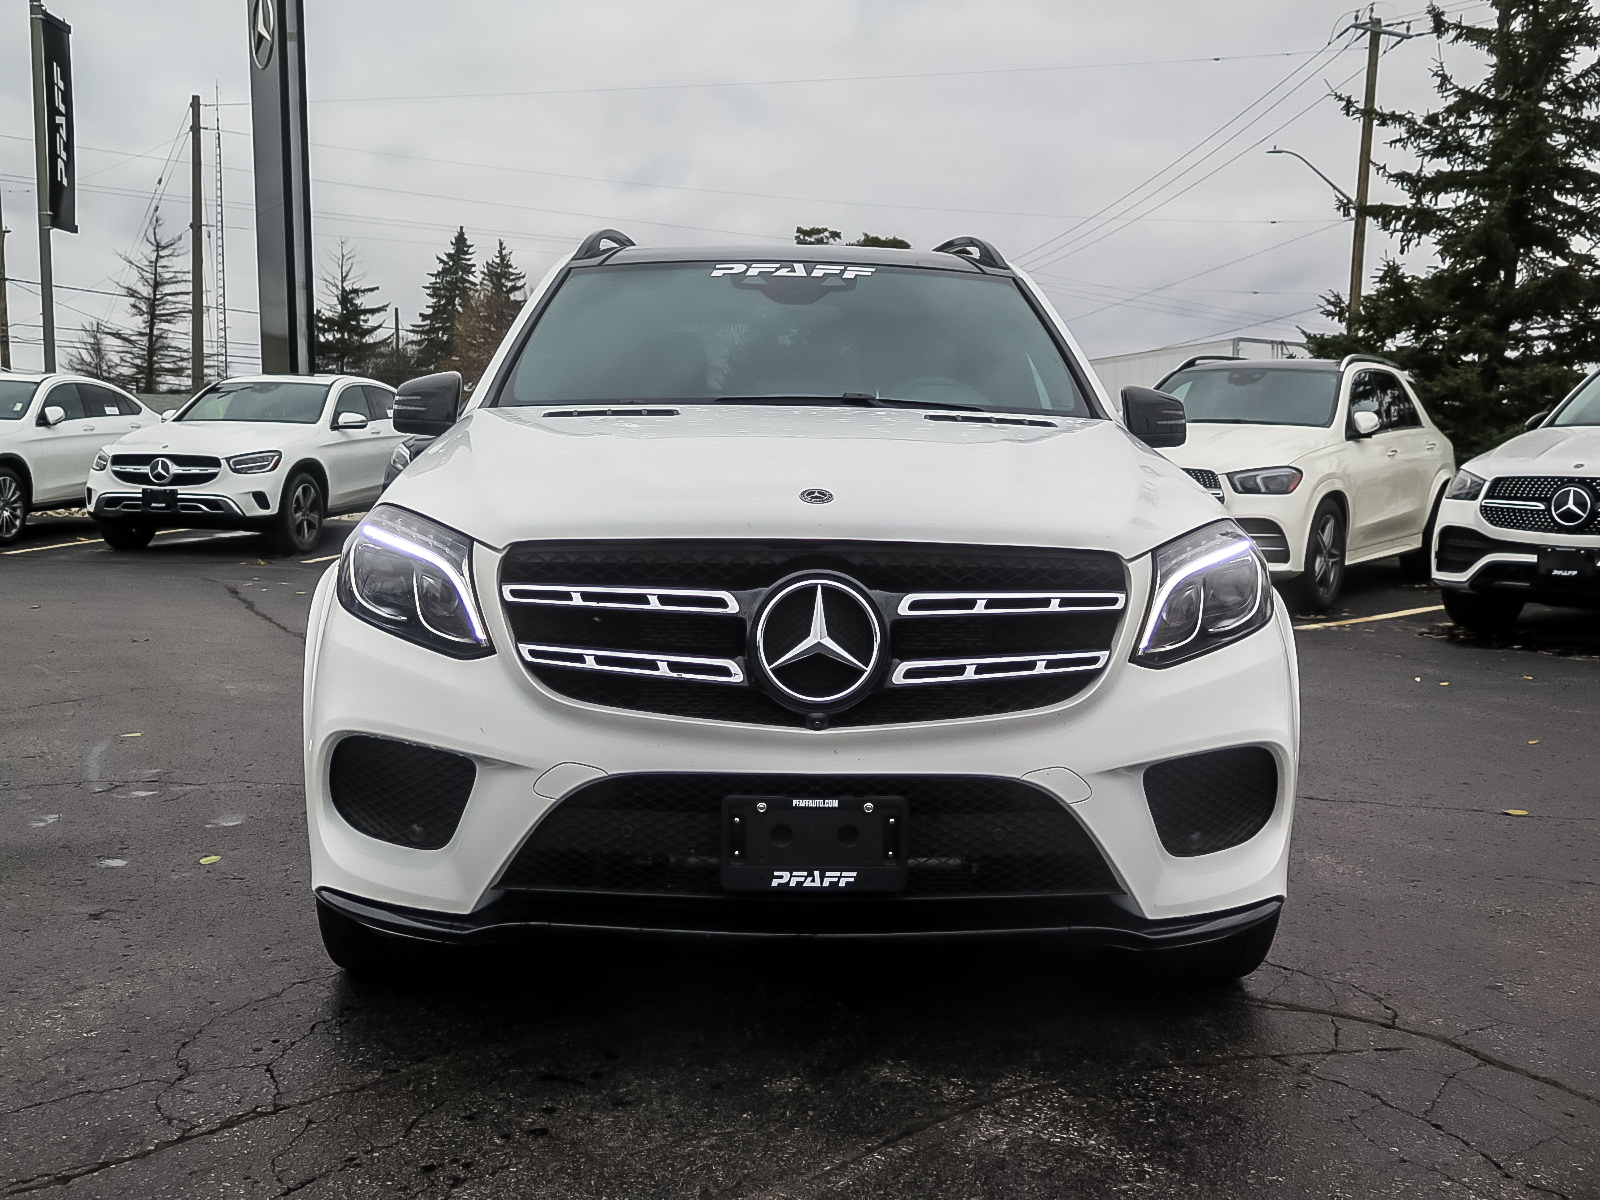 New 2019 Mercedes-Benz GLS450 4MATIC SUV